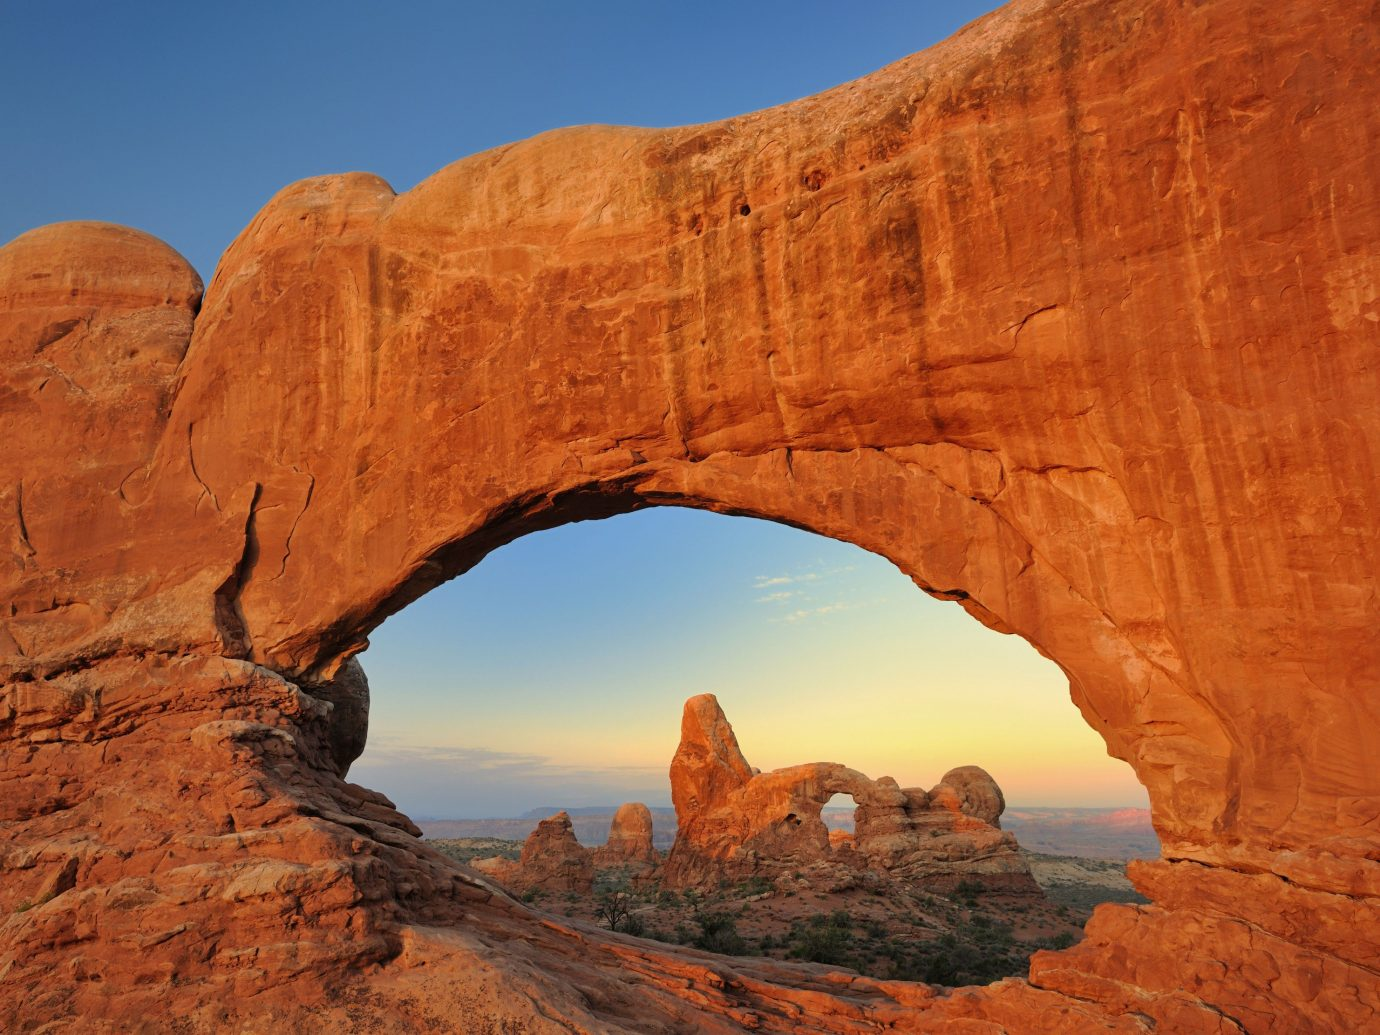 National Parks Outdoors + Adventure Trip Ideas mountain Nature valley rock outdoor canyon arch geographical feature landform broken arch natural arch butte cliff wadi geology landscape terrain badlands formation plateau Sunset national park stone hillside